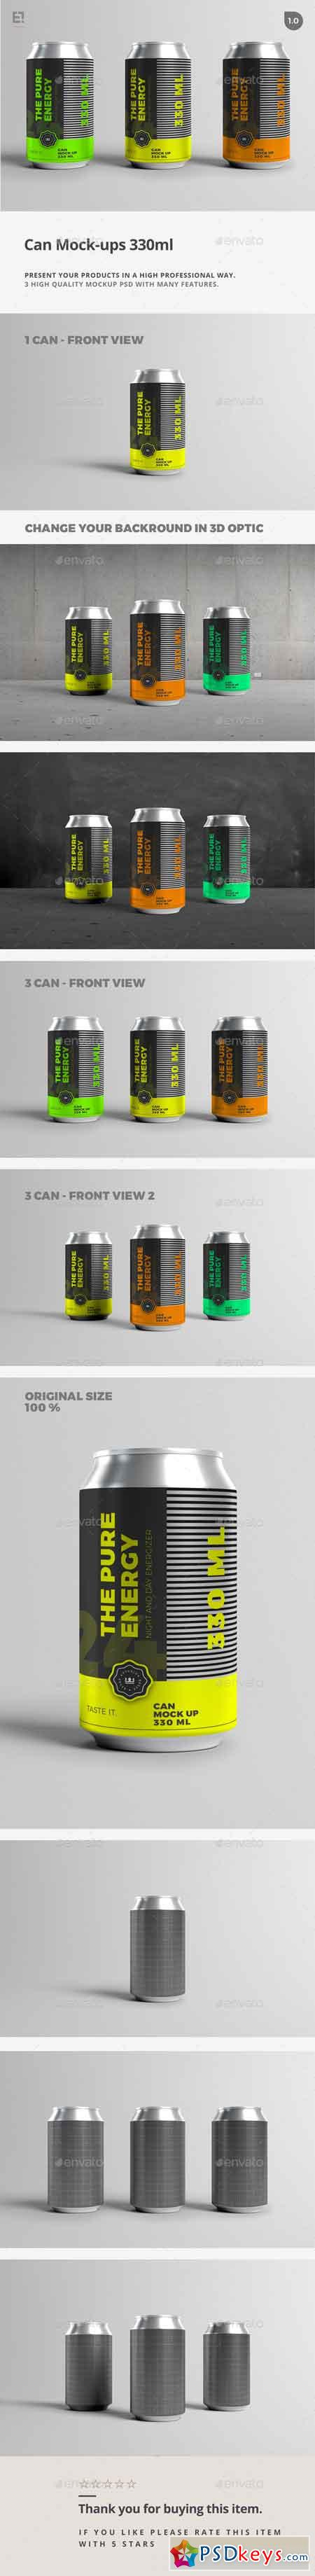 Can Mock-Up - 330ml 17564788